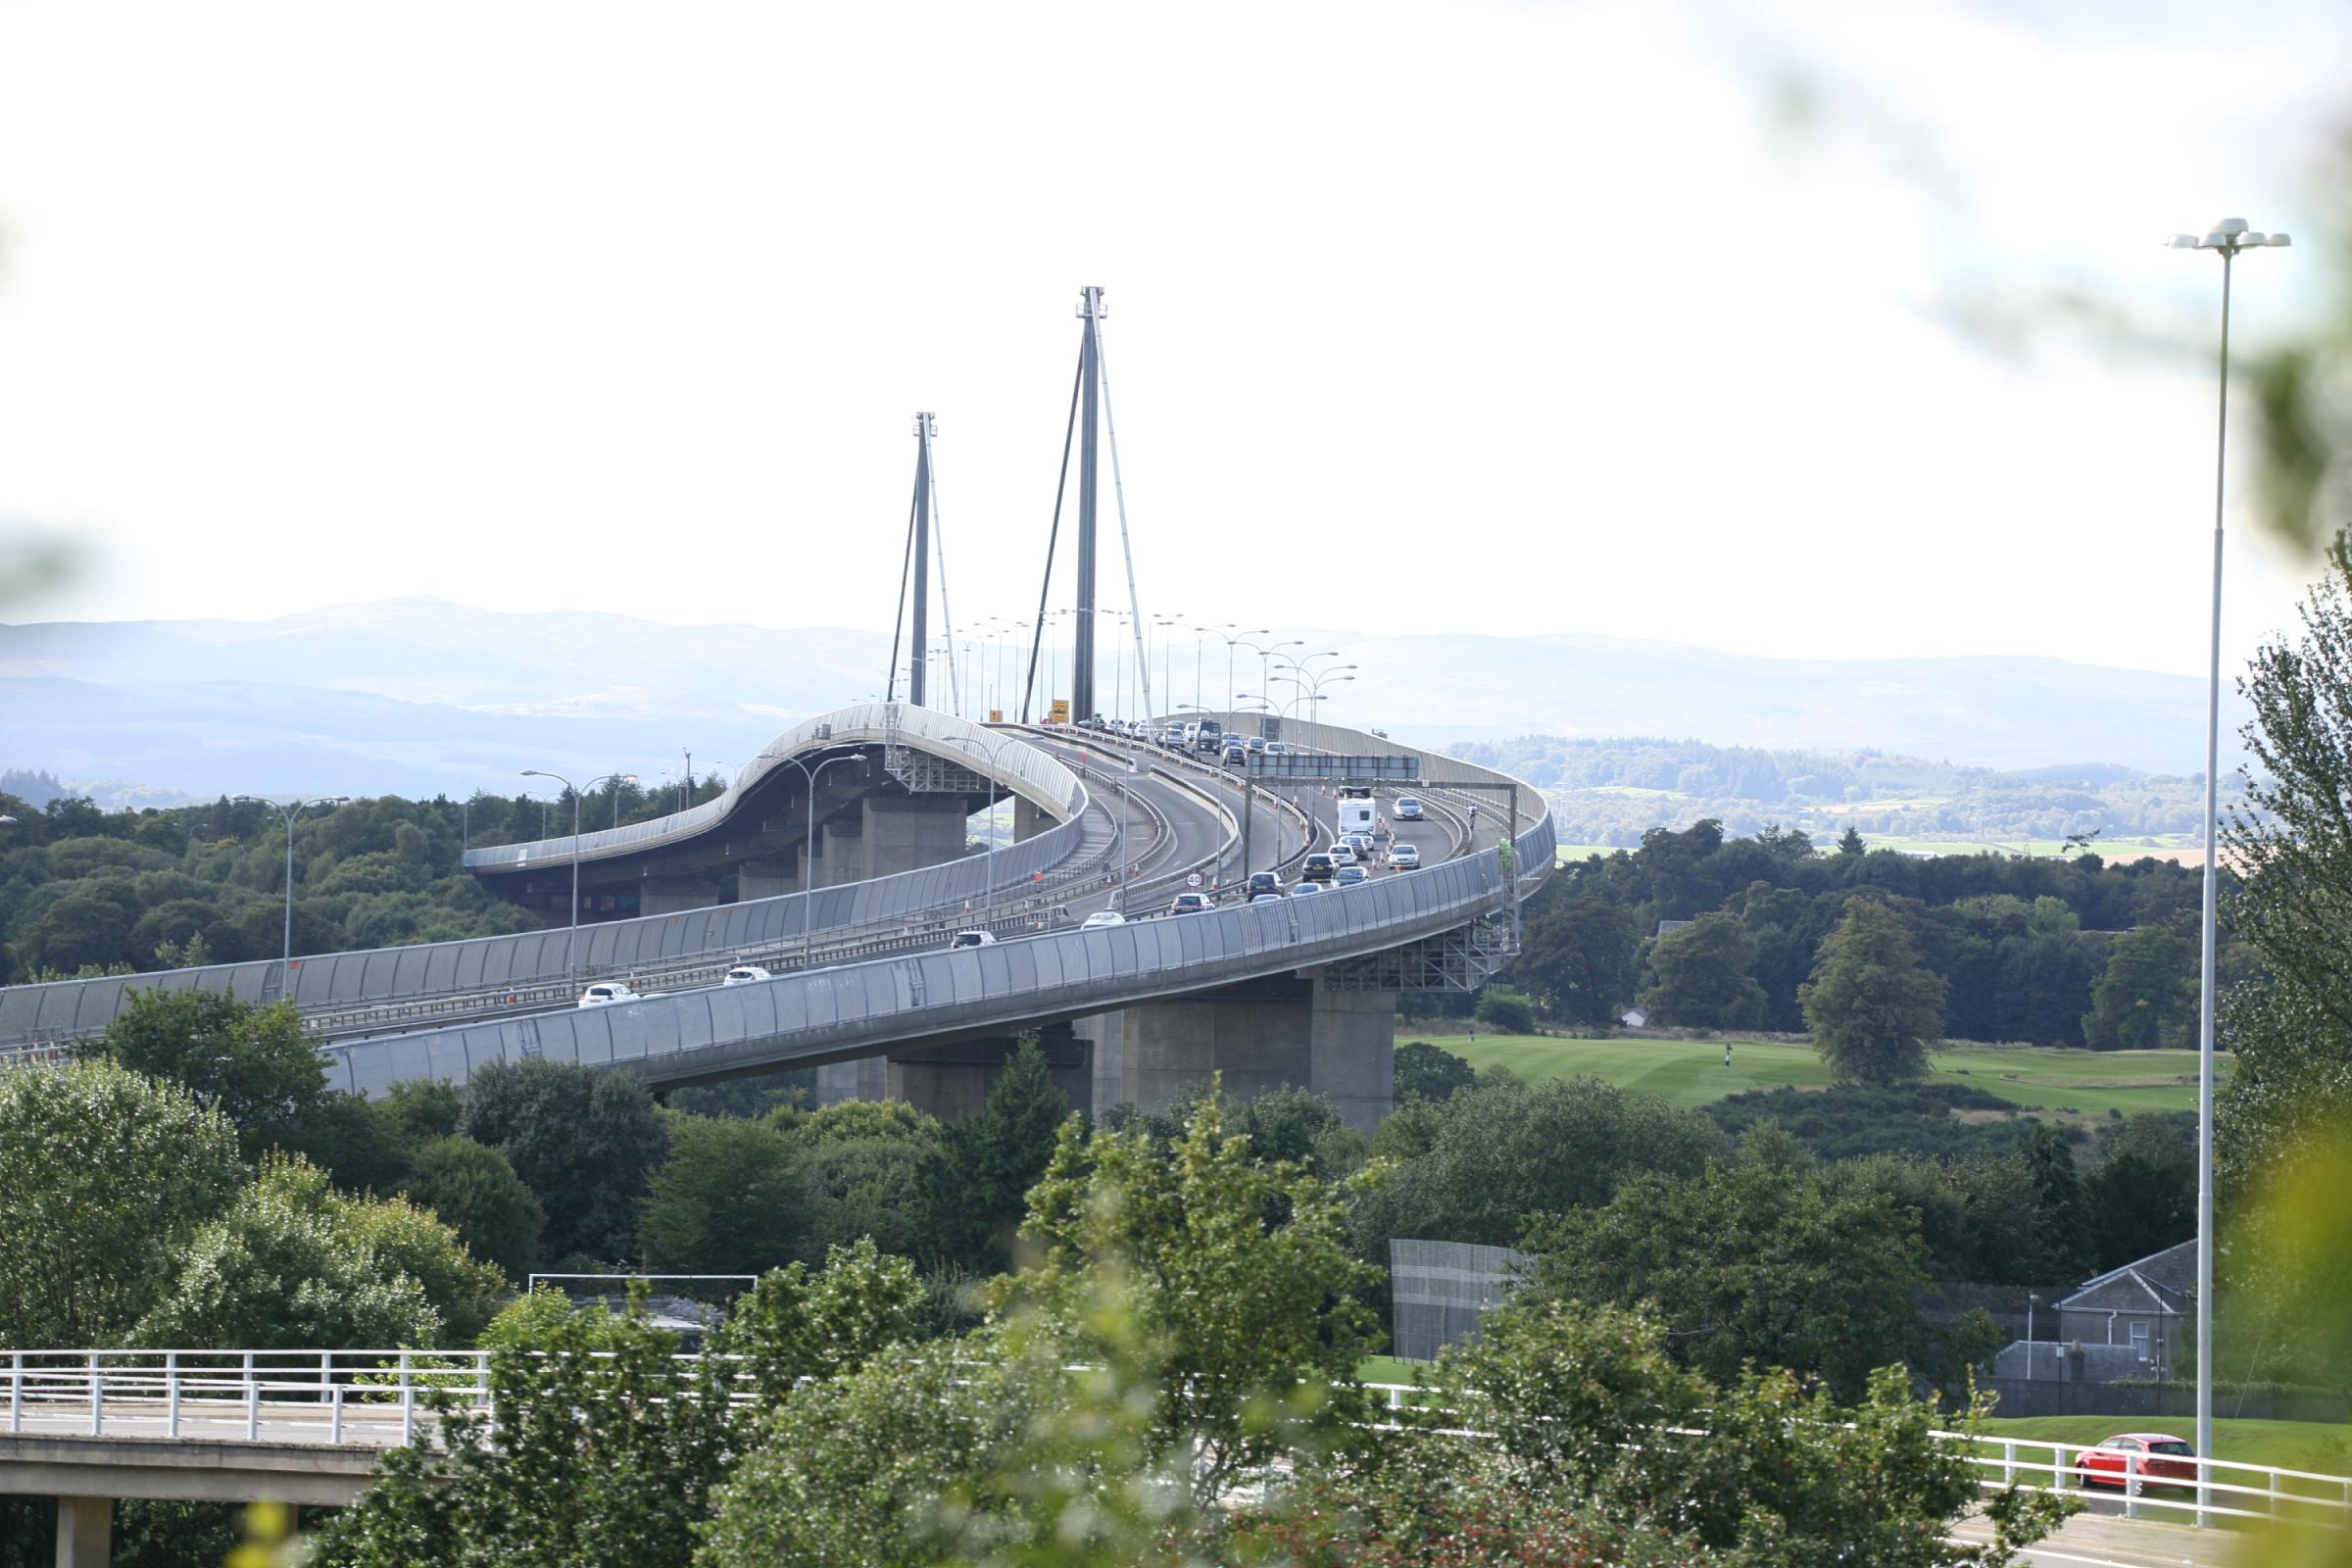 Work on the M898 south of the Erskine Bridge this weekend will now take place overnight only